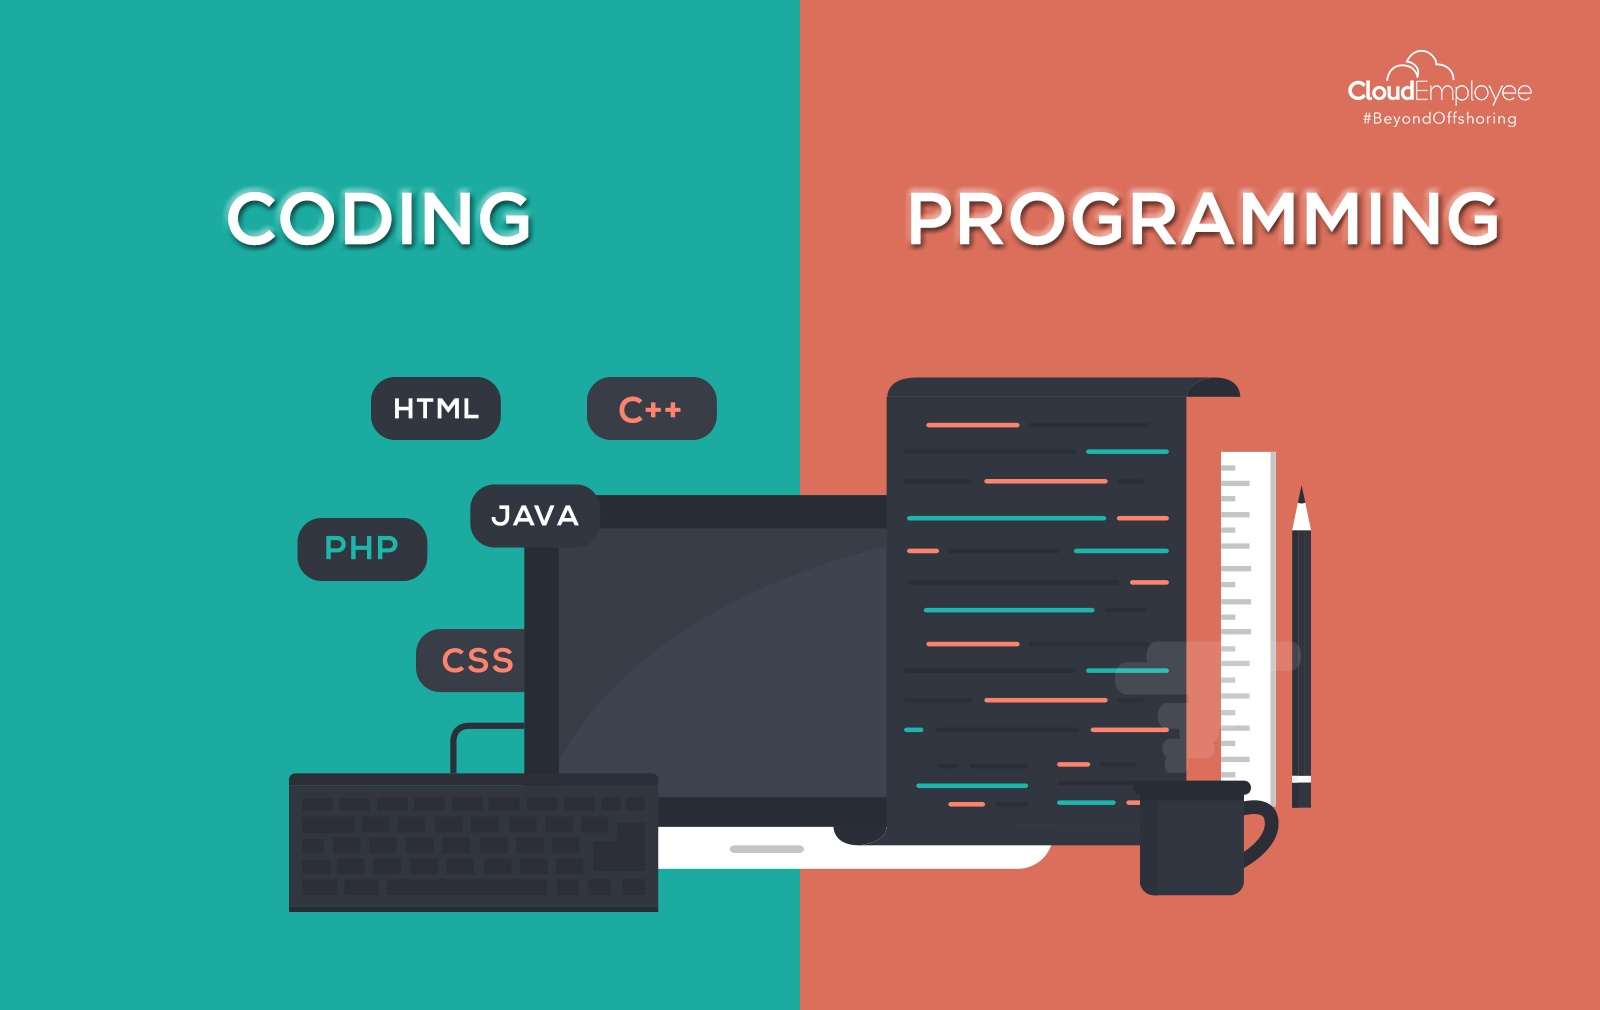 The obvious disparity between coding and programming